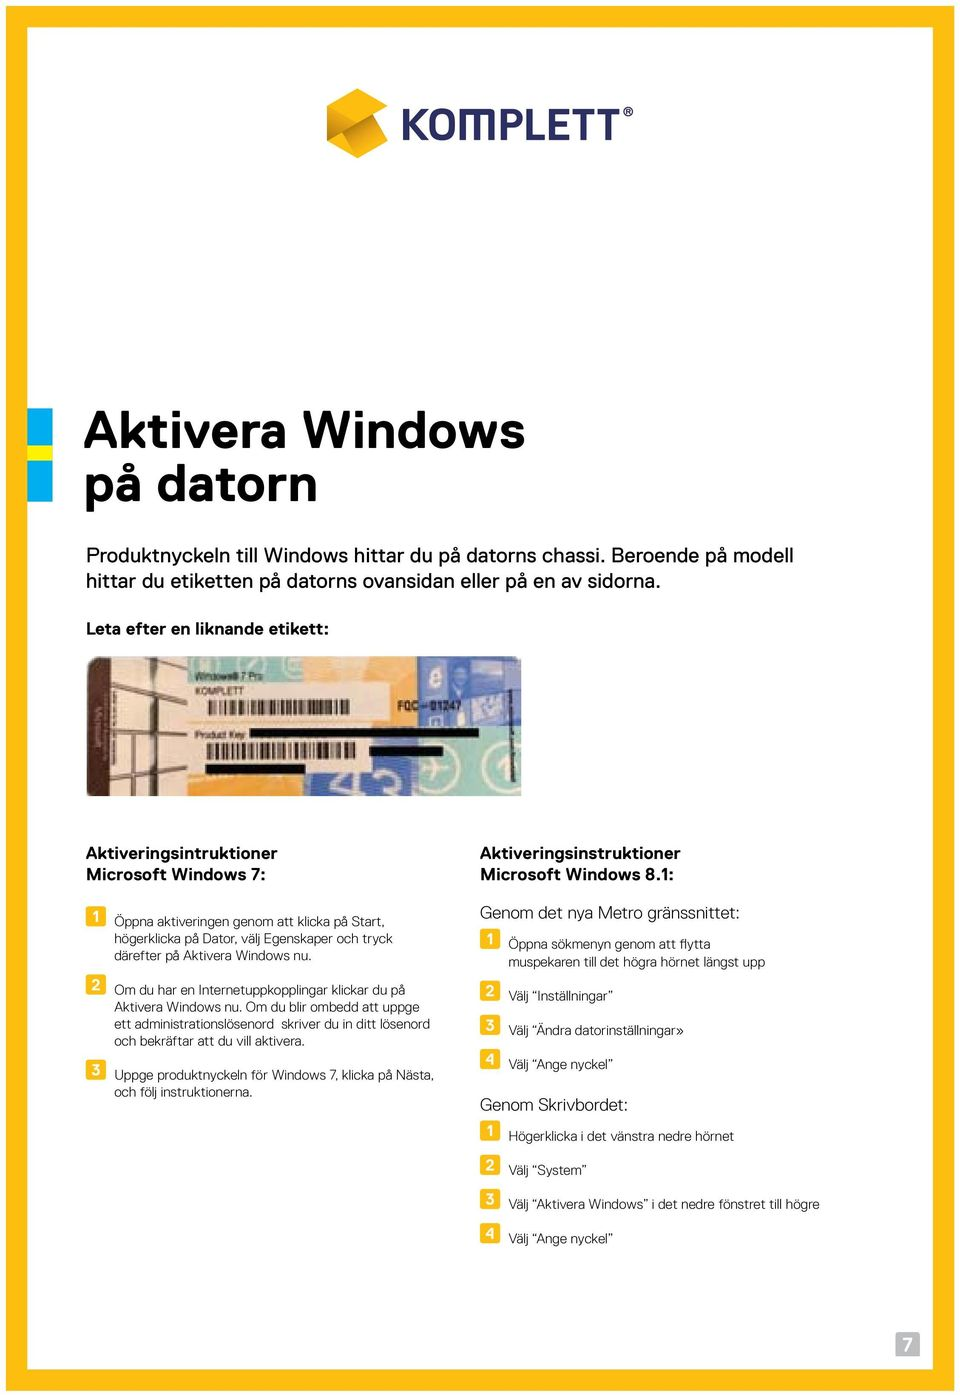 Windows nu. Om du har en Internetuppkopplingar klickar du på Aktivera Windows nu.